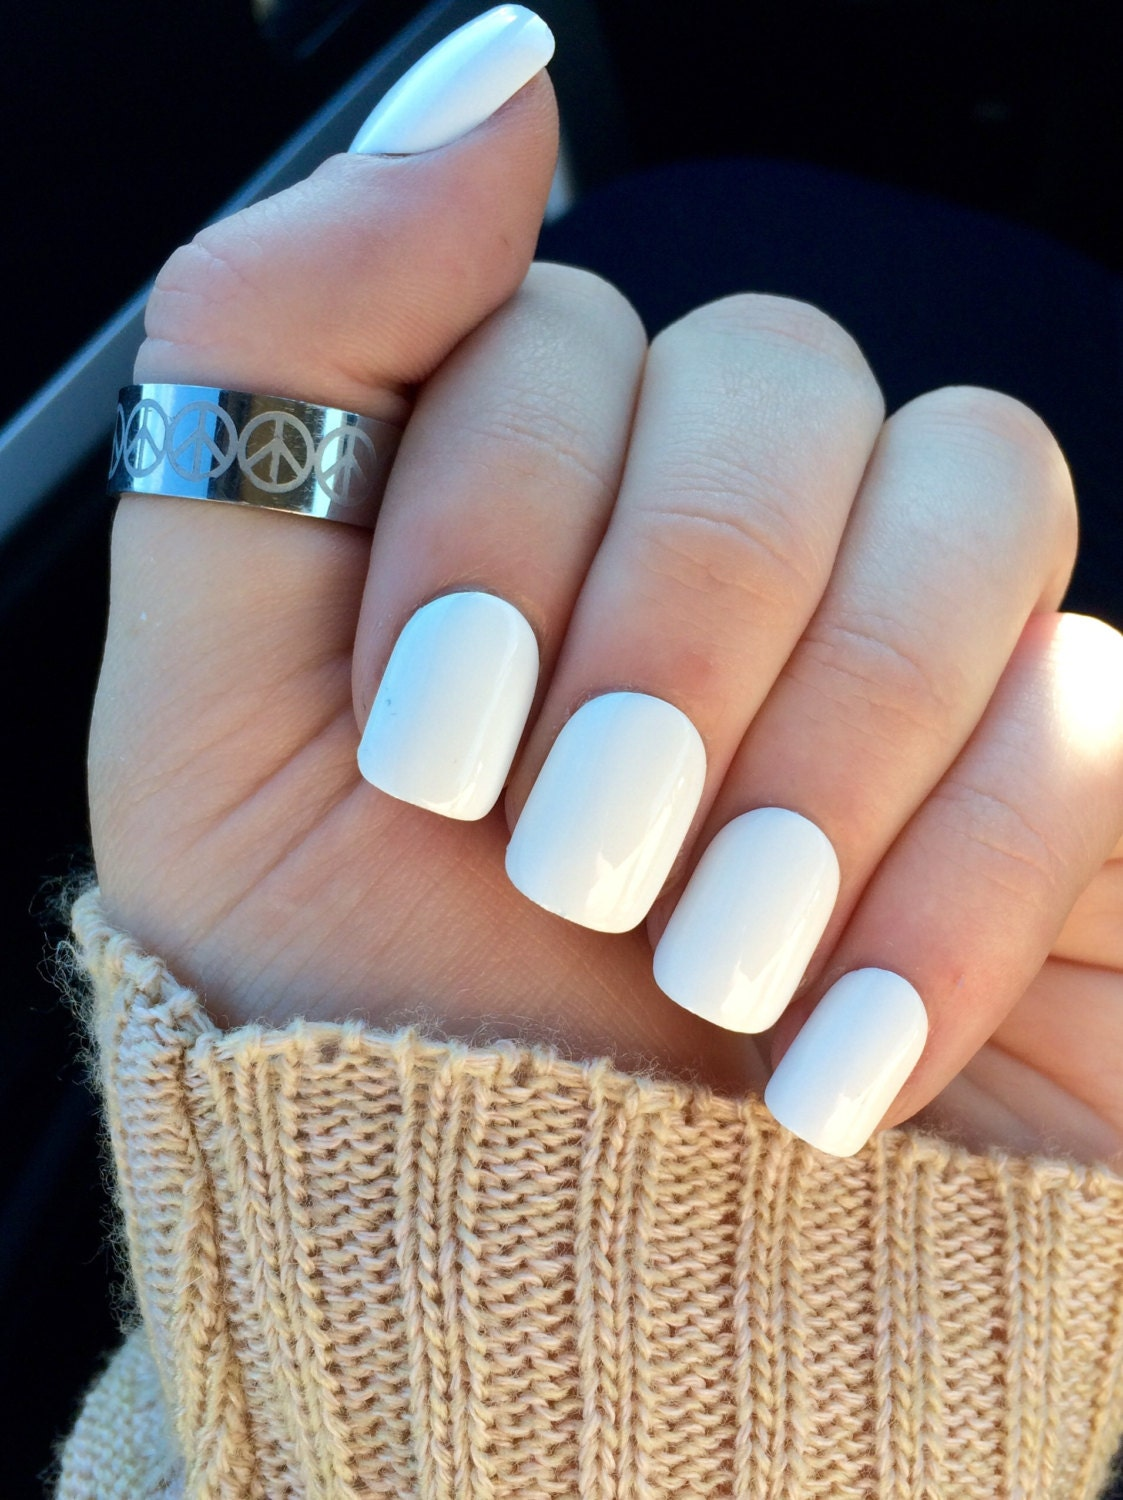 White nails fake nails white acrylic nails false nails